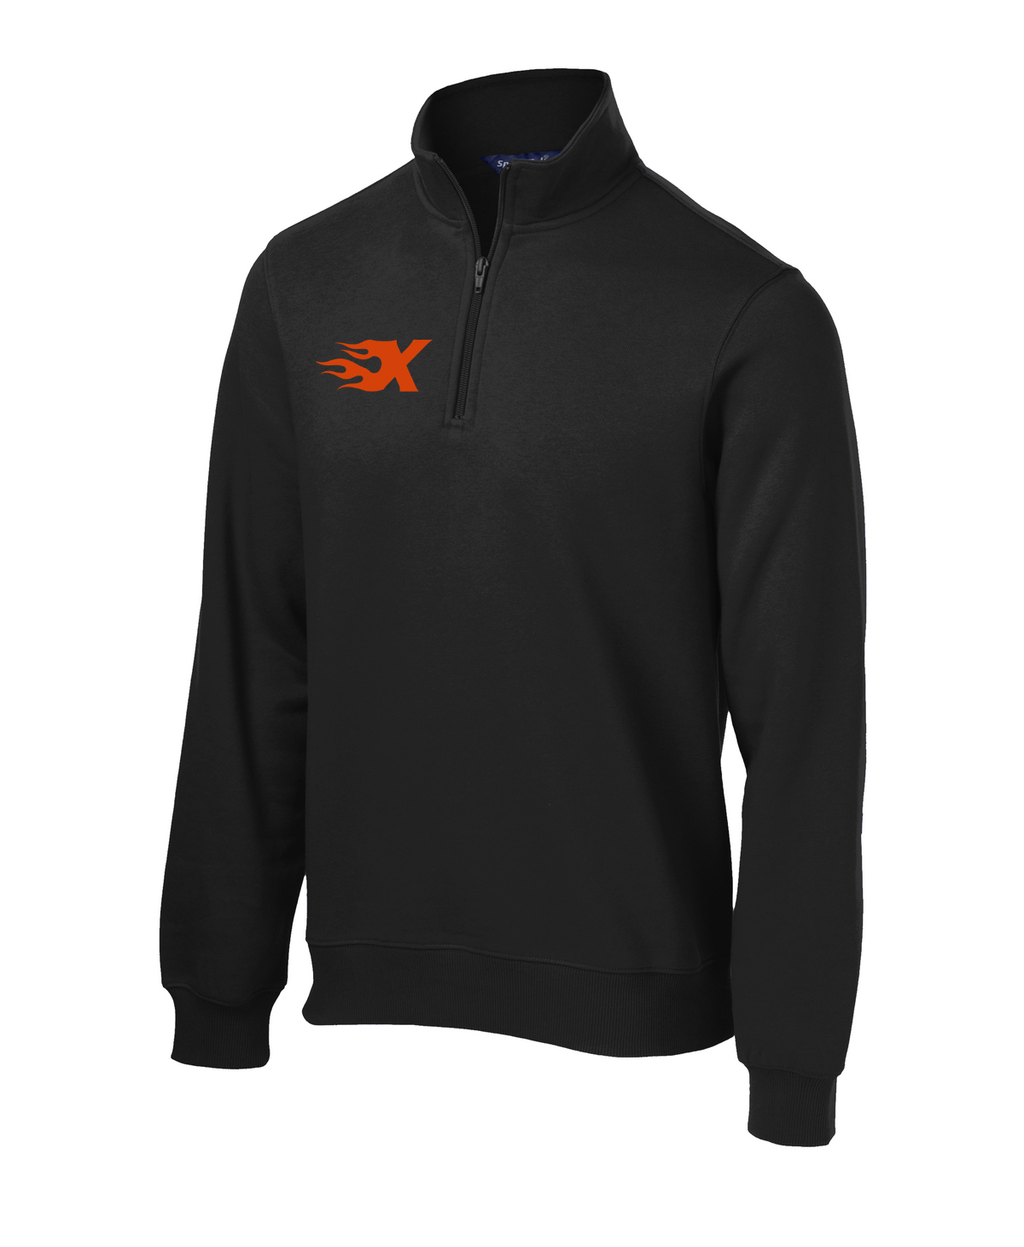 Xtreme Lacrosse Black 1/4 Zip Fleece